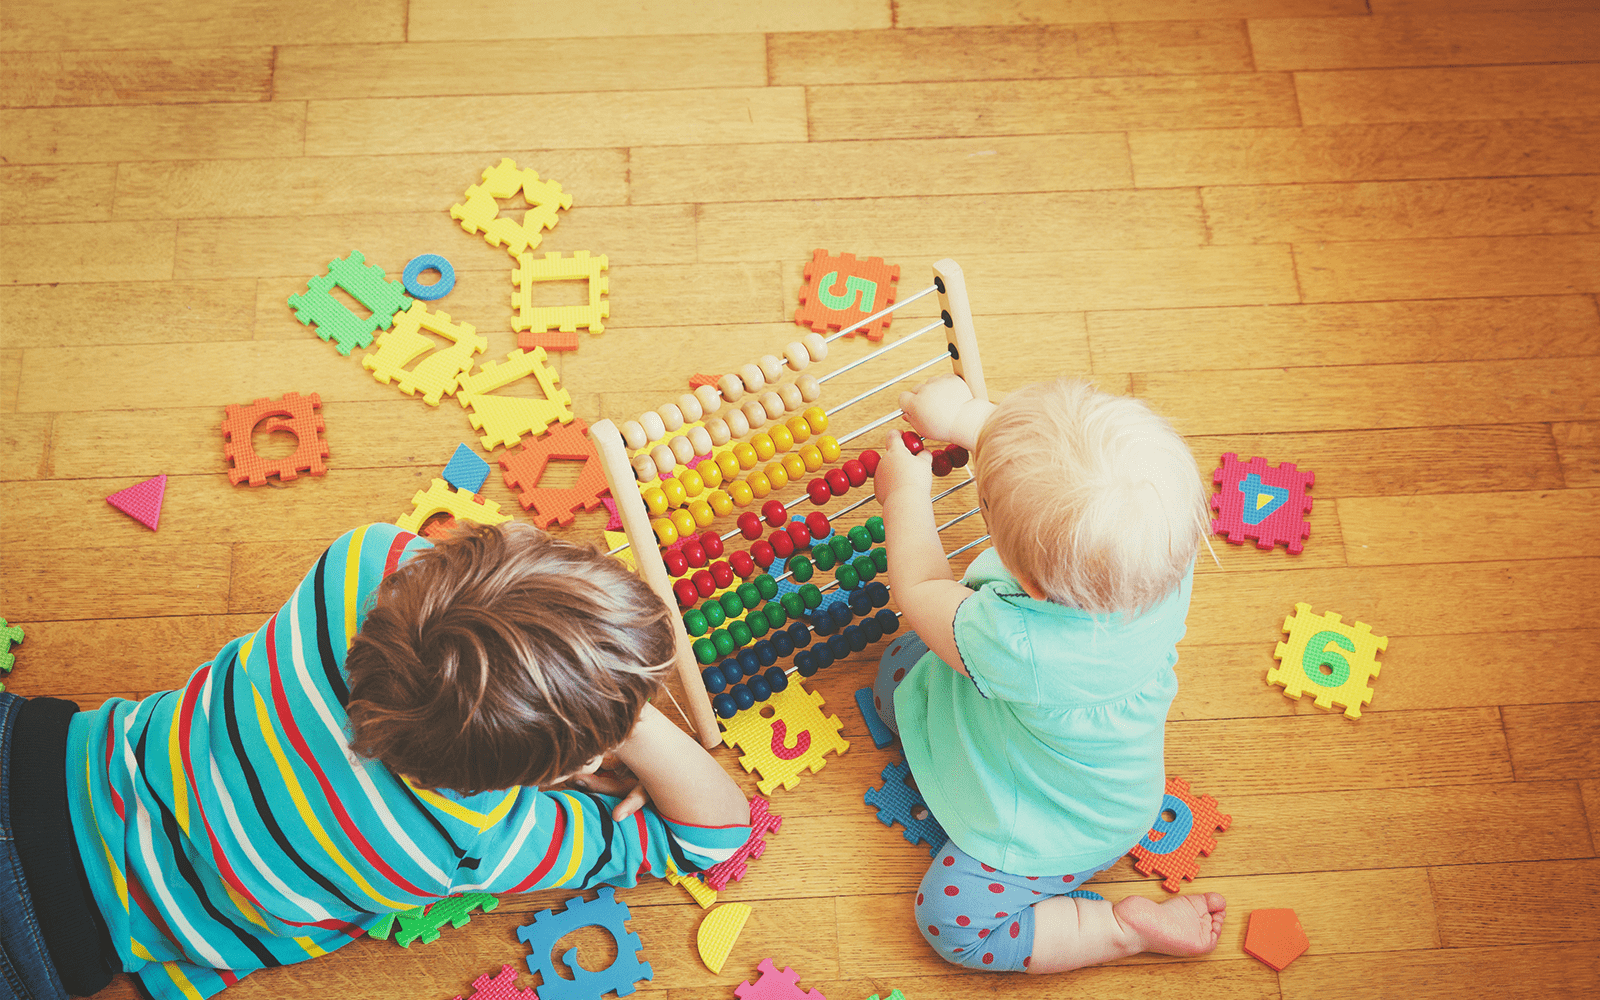 Young child and baby play with early learning toys